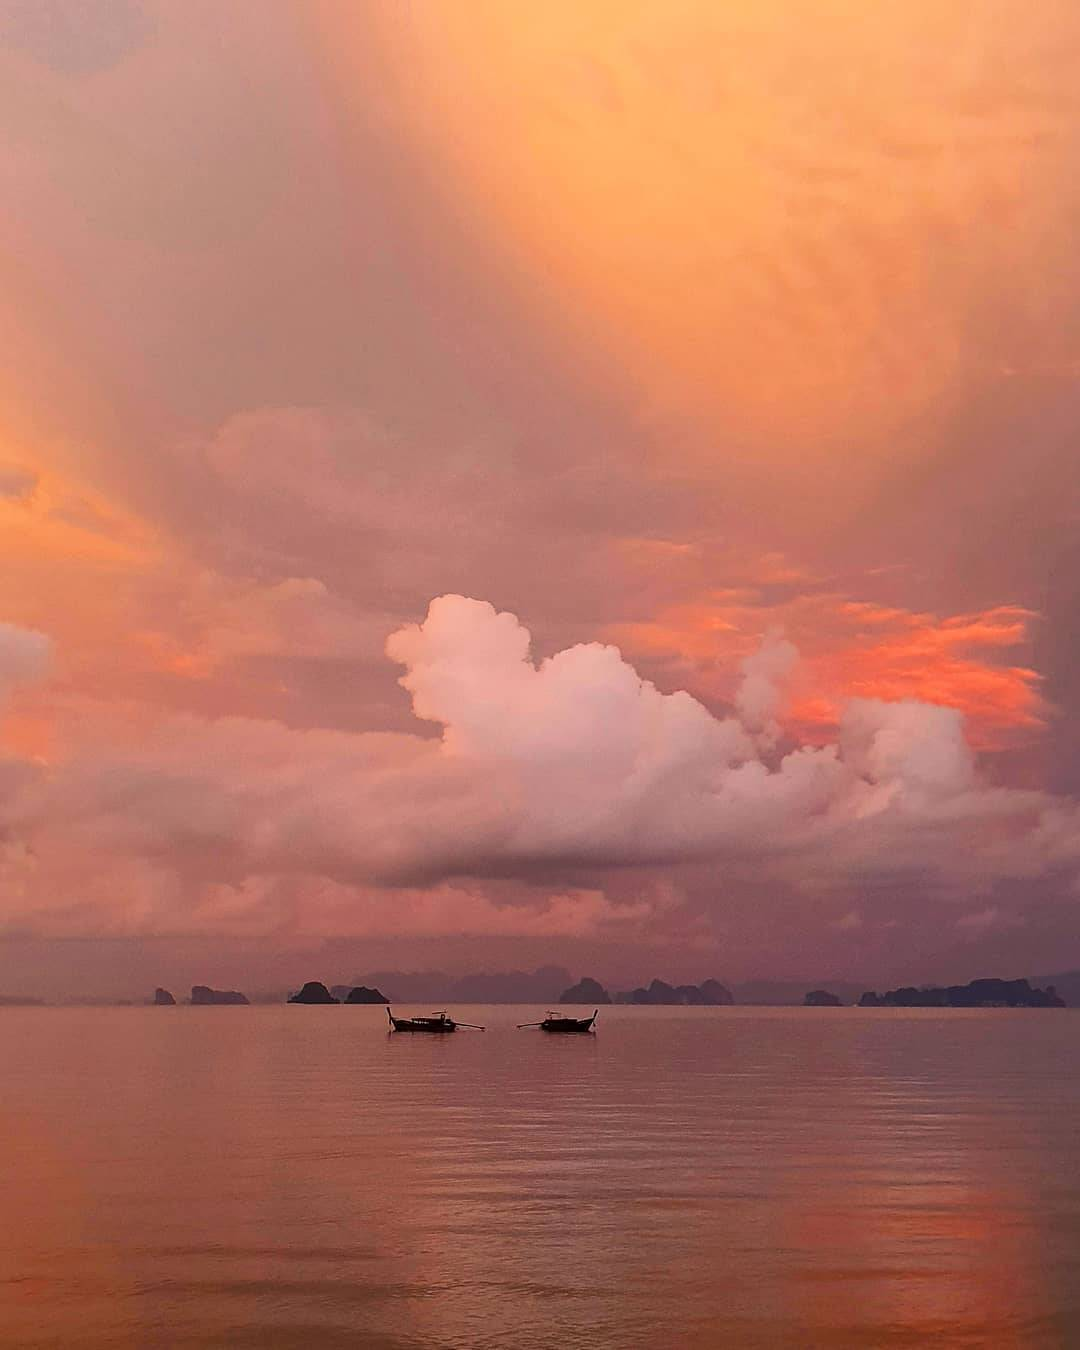 The sky that almost looks like a painting seen from Koh Yao Yai